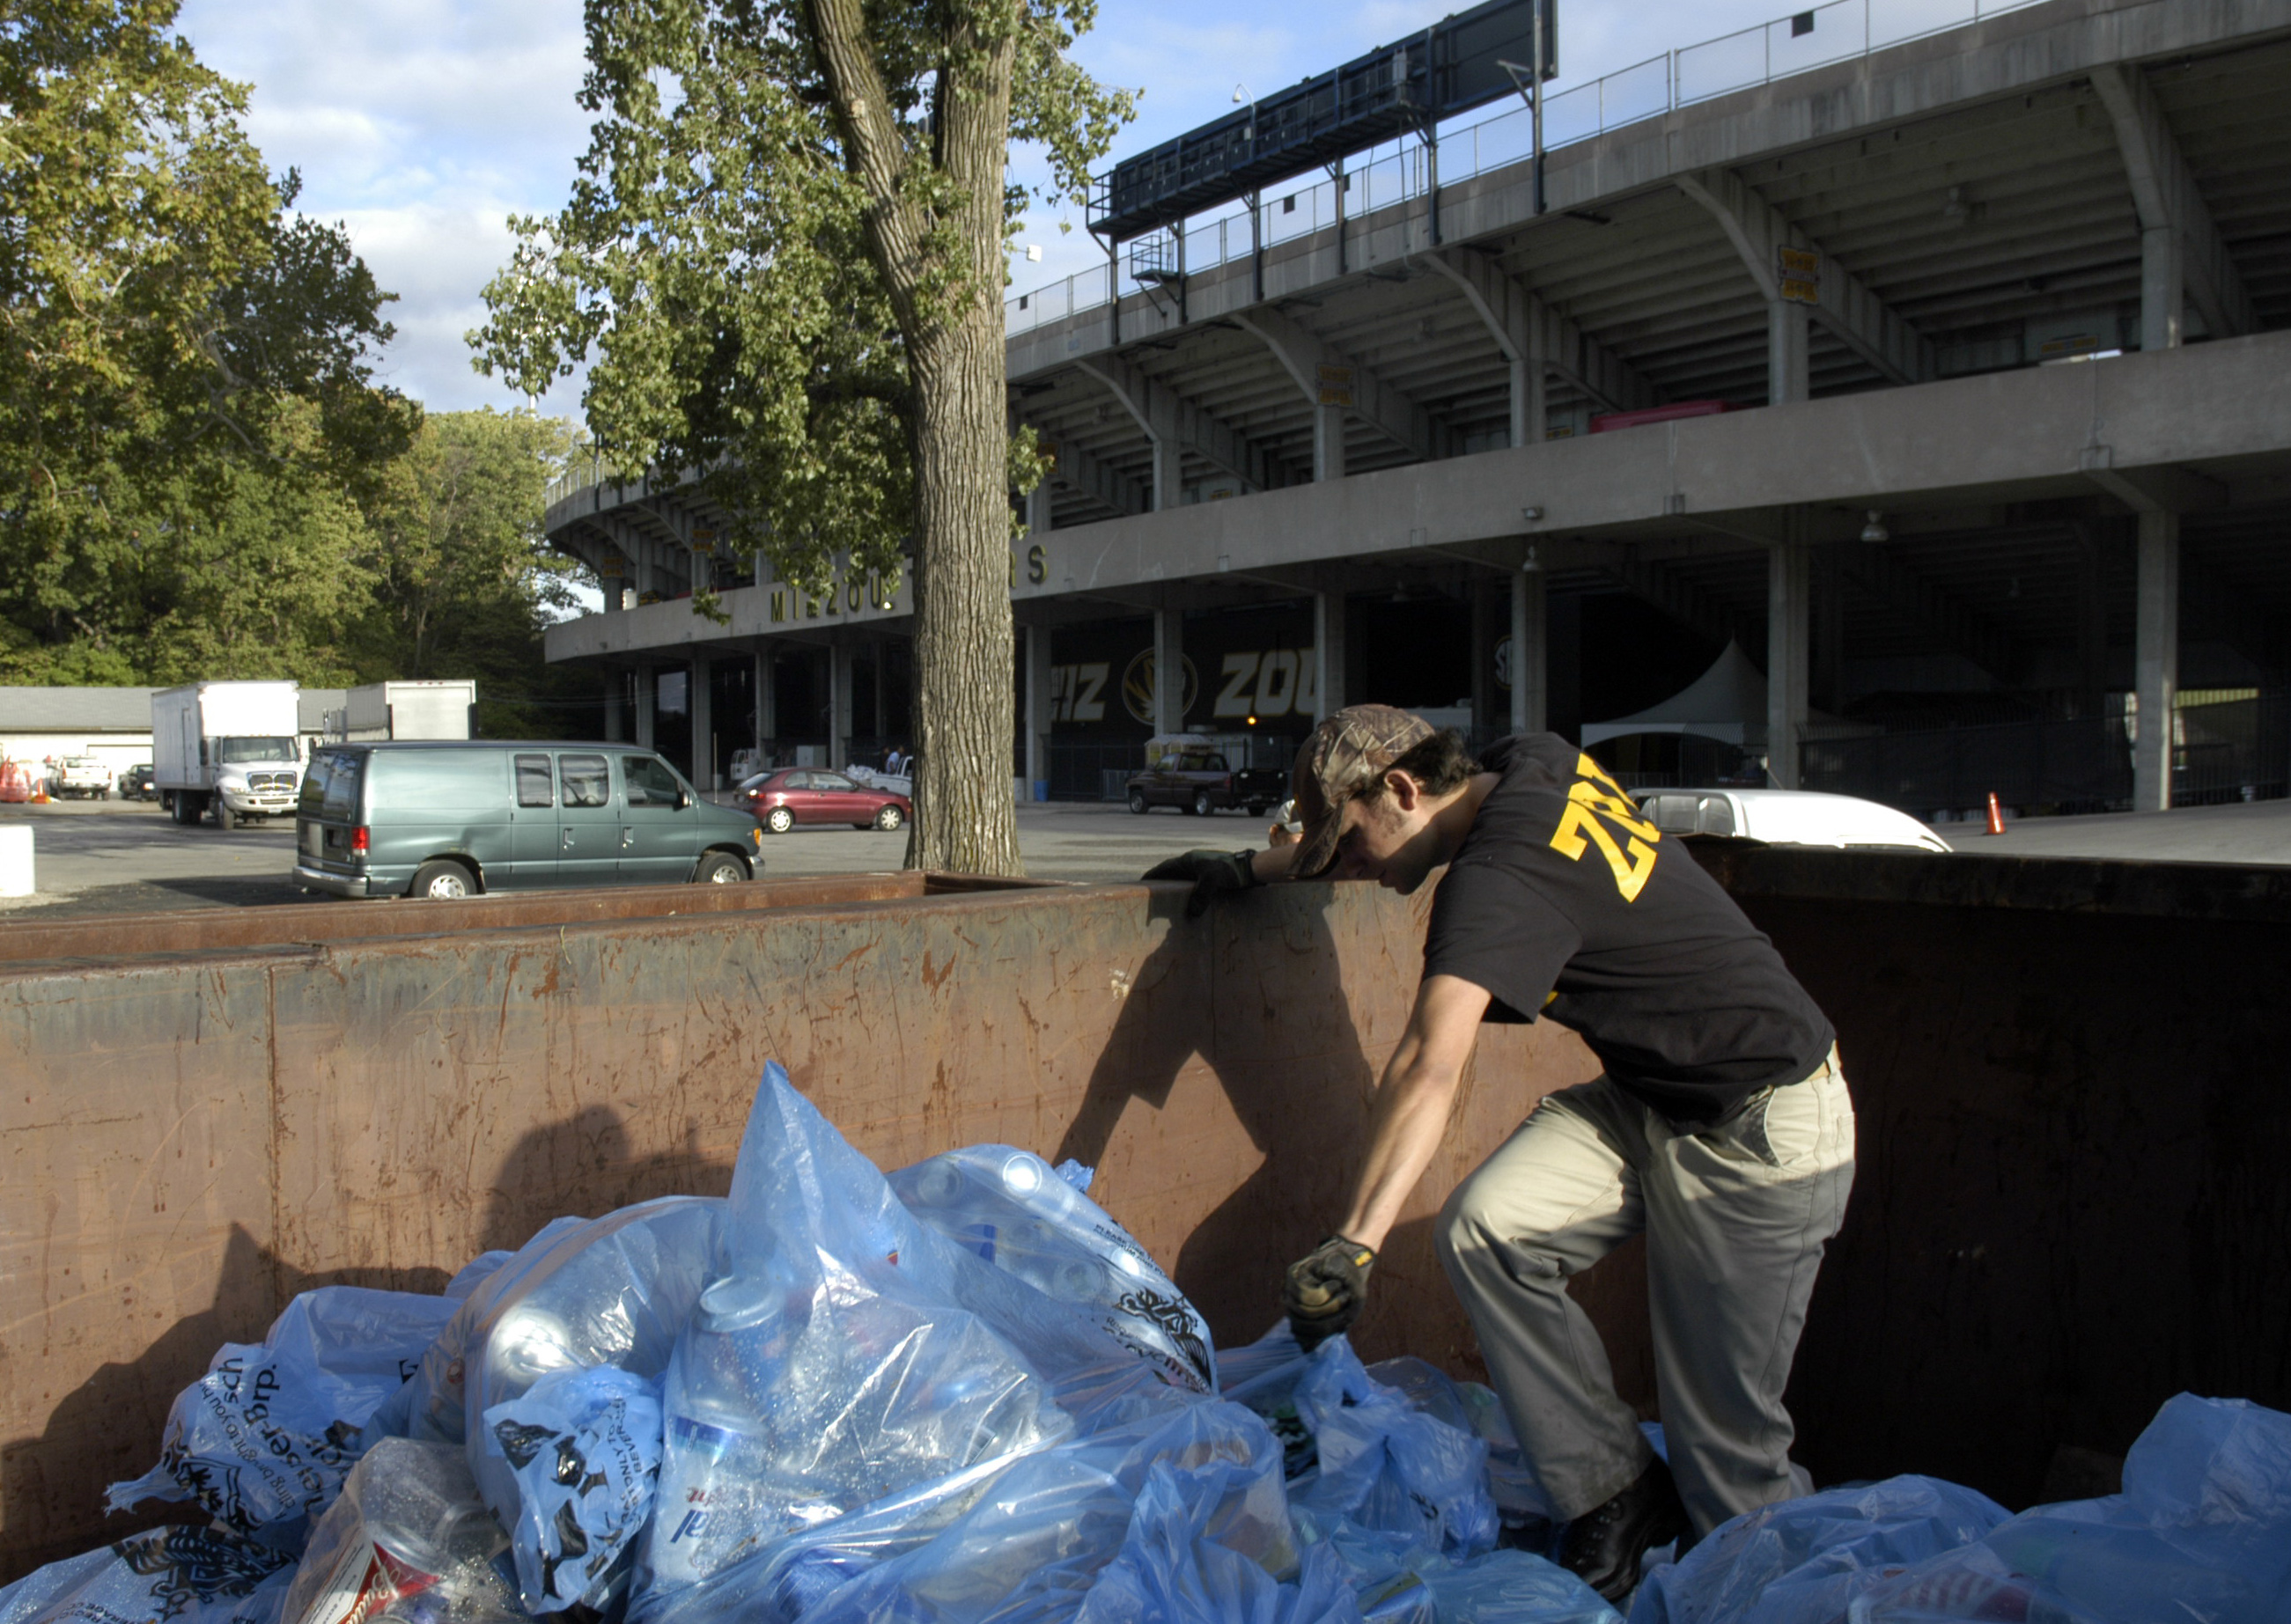 Andrew Daniels, first-year graduate student in parks, recreation and tourism, collects recycling bags from a dumpster behind Memorial Stadium the morning after the Sept. 13 home game against Arizona State. The game generated several tons of recyclable was